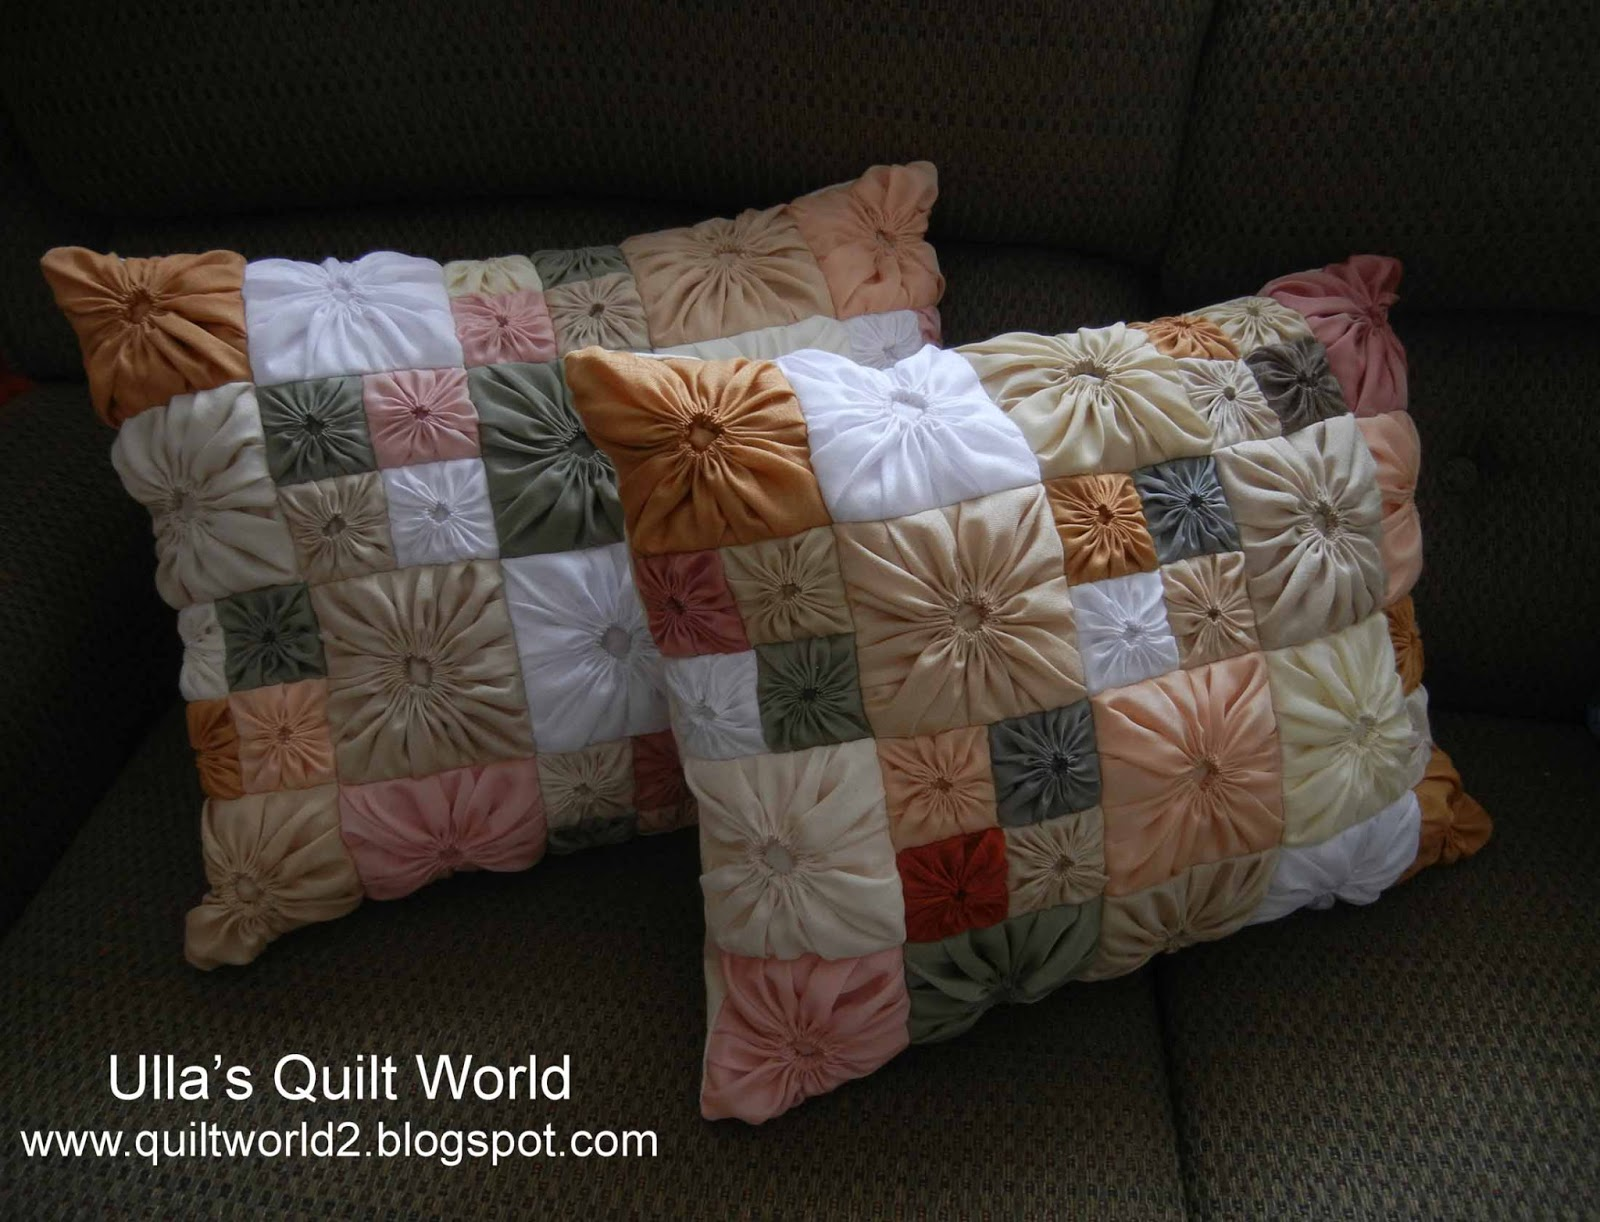 Quilt Patterns Pillowcases : Ulla s Quilt World: Square Yo-Yo pattern, Quilted Pillowcase